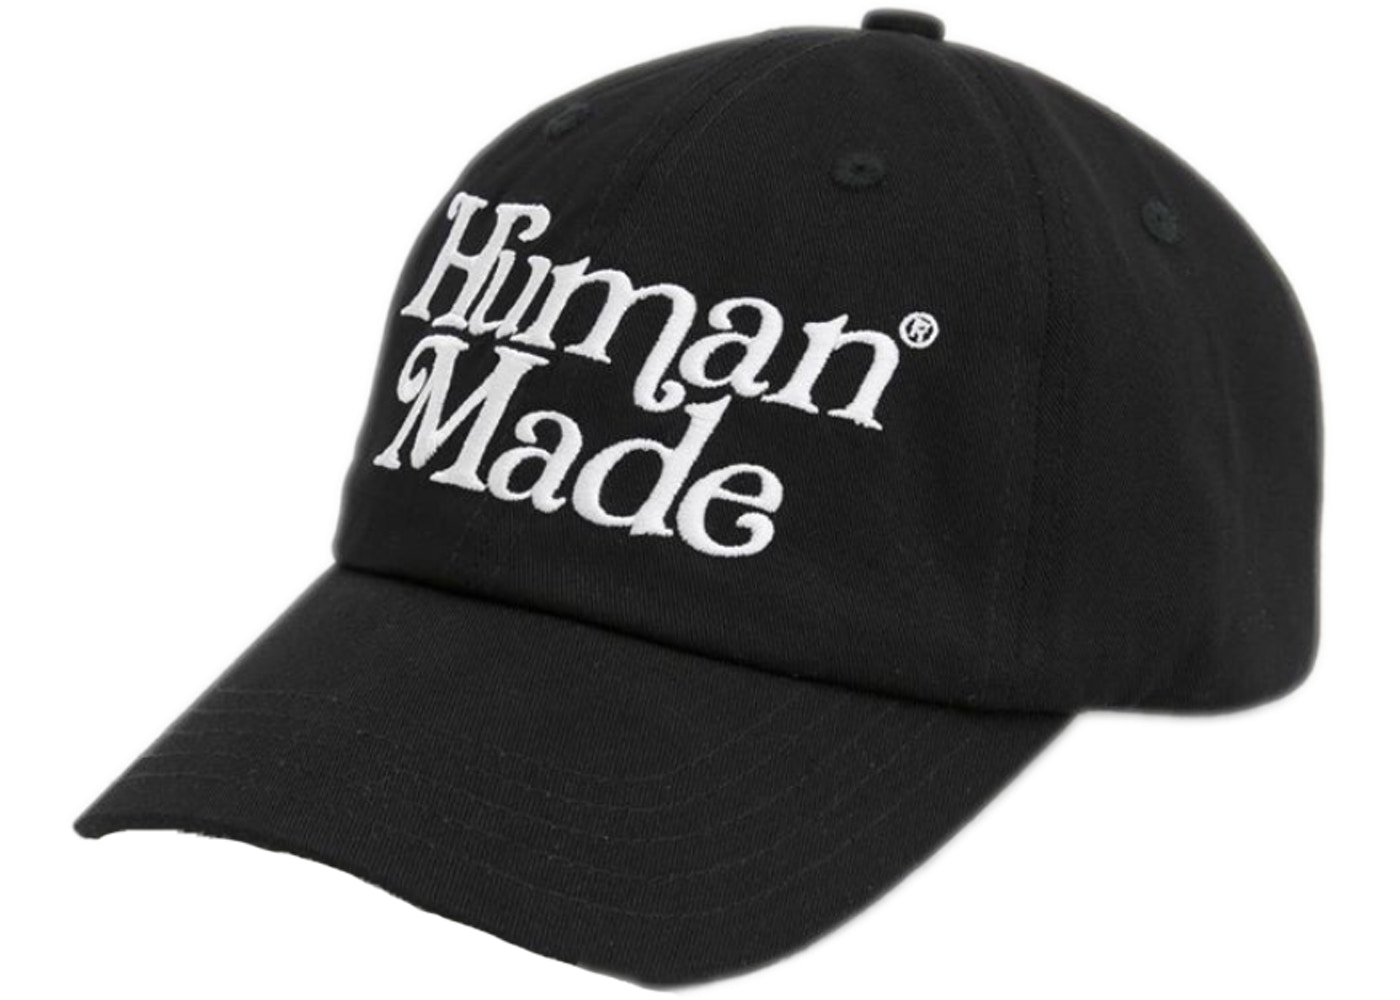 d3c91300 Human Made x Girls Don't Cry Hat Black - SS19